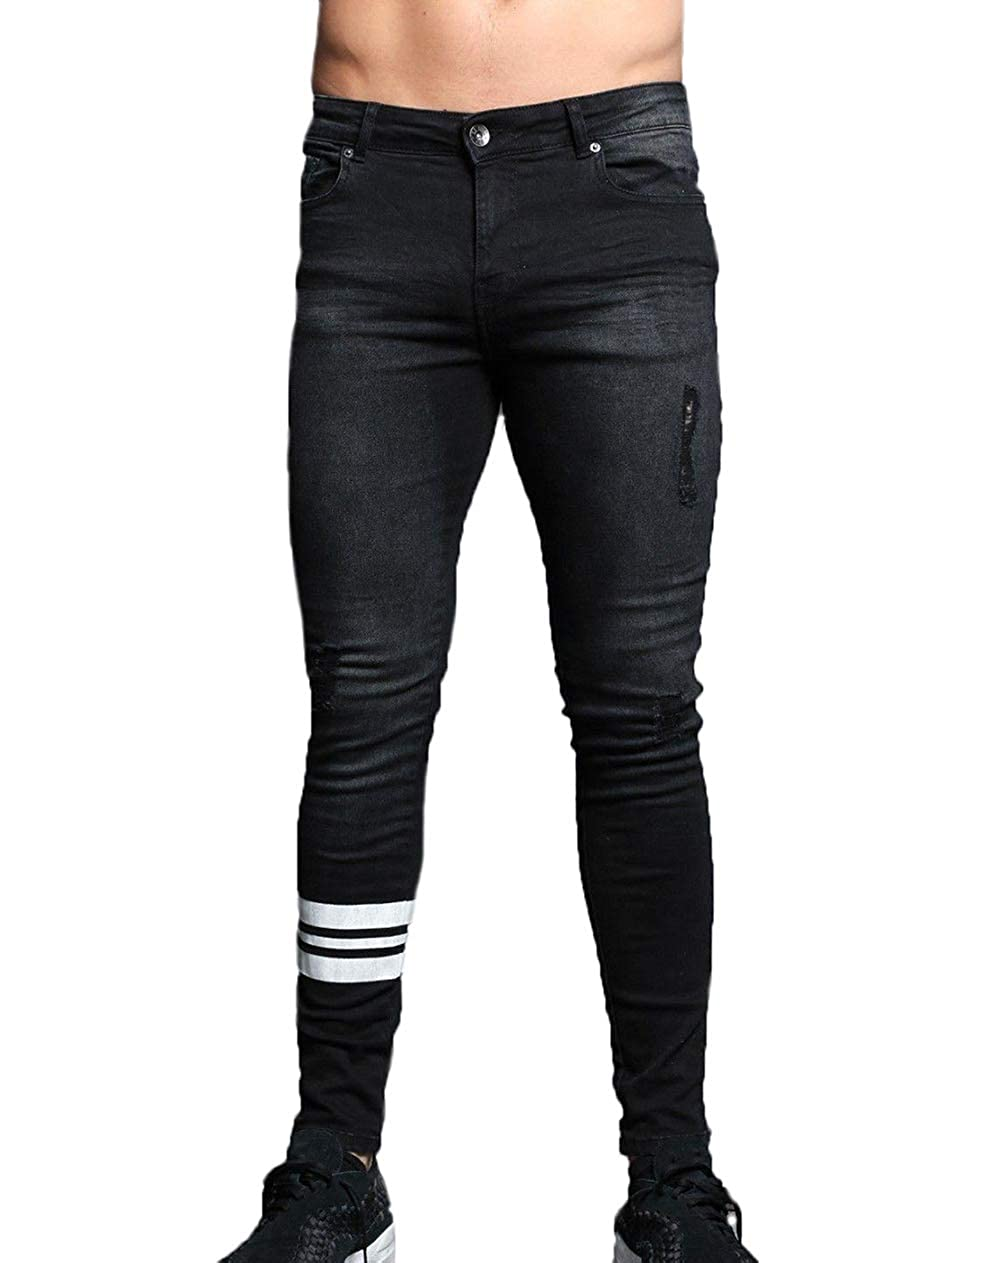 7d19902ef3bd XARAZA Men s Ripped Skinny Denim Jeans Slim Fit Stretch Pencil Pants at  Amazon Men s Clothing store